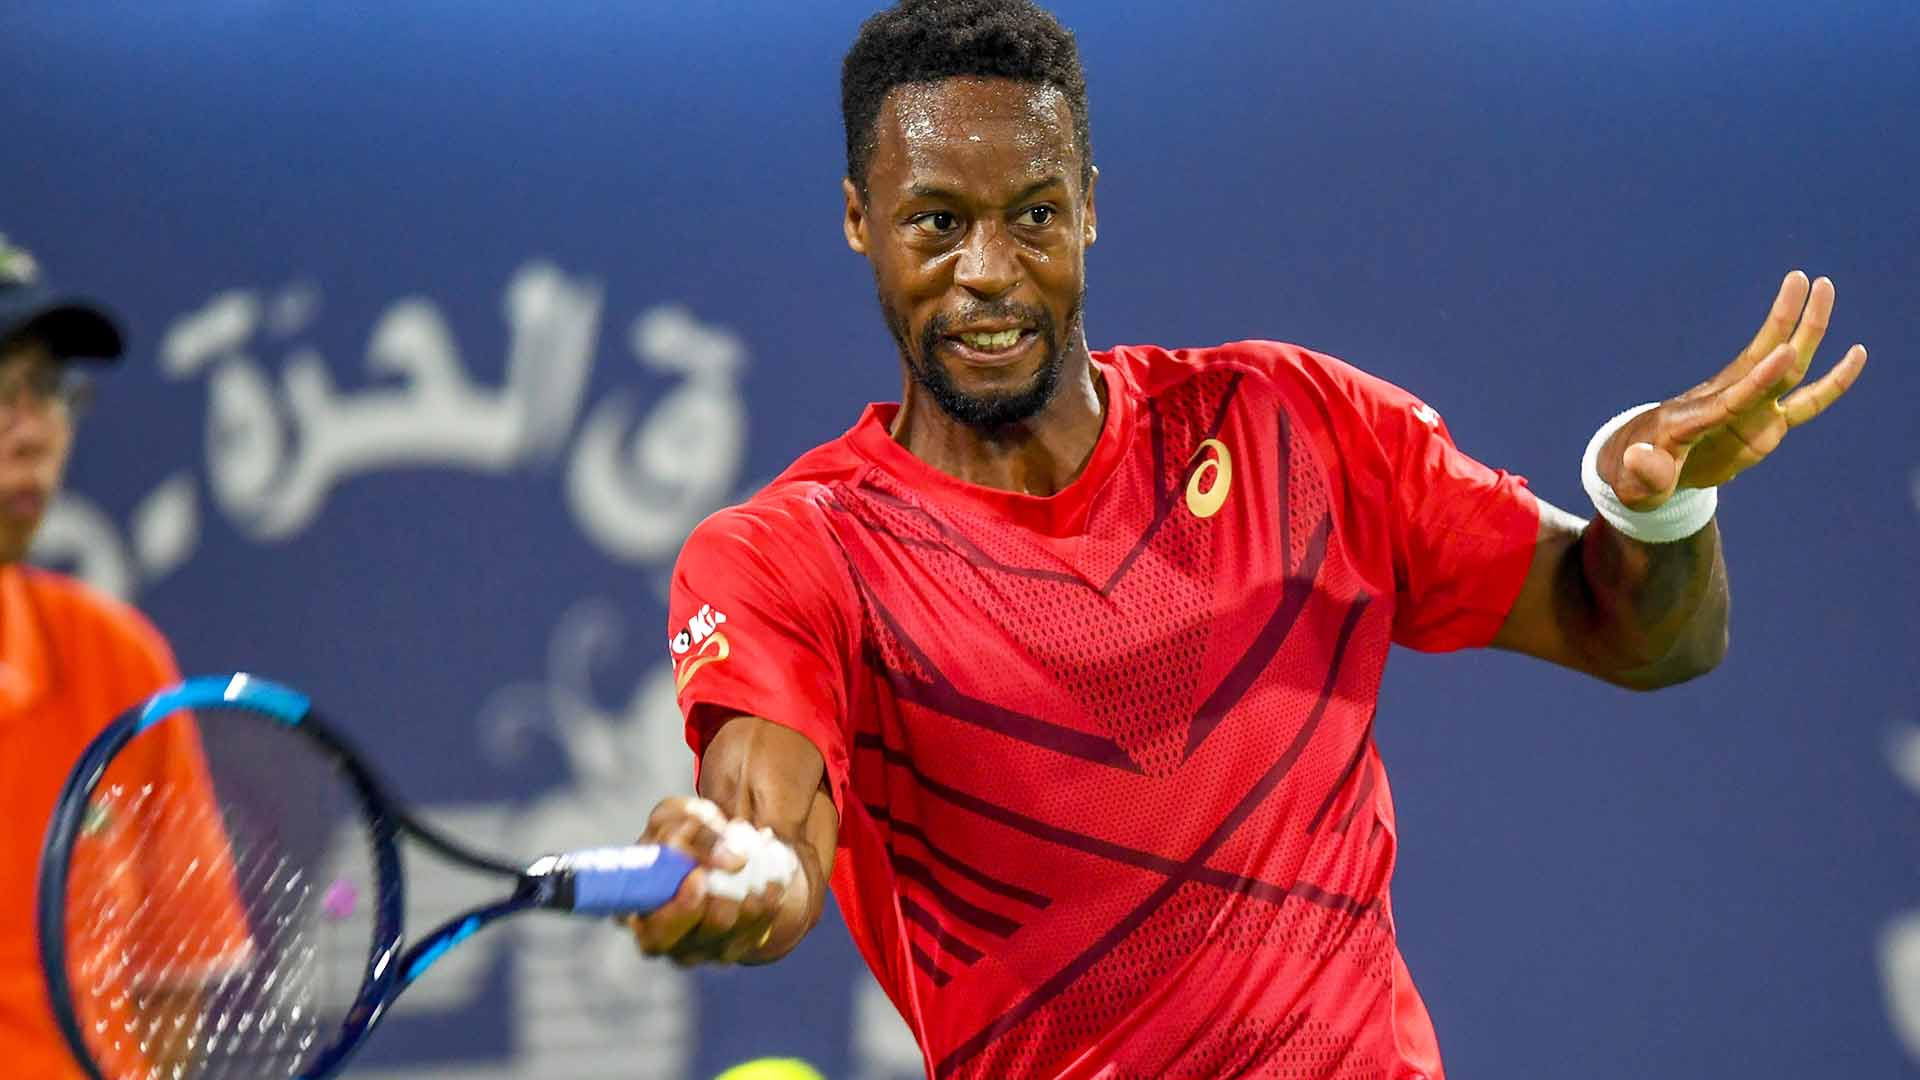 Gael Monfils is attempting to win his third title of 2020 at the Dubai Duty Free Tennis Championships.